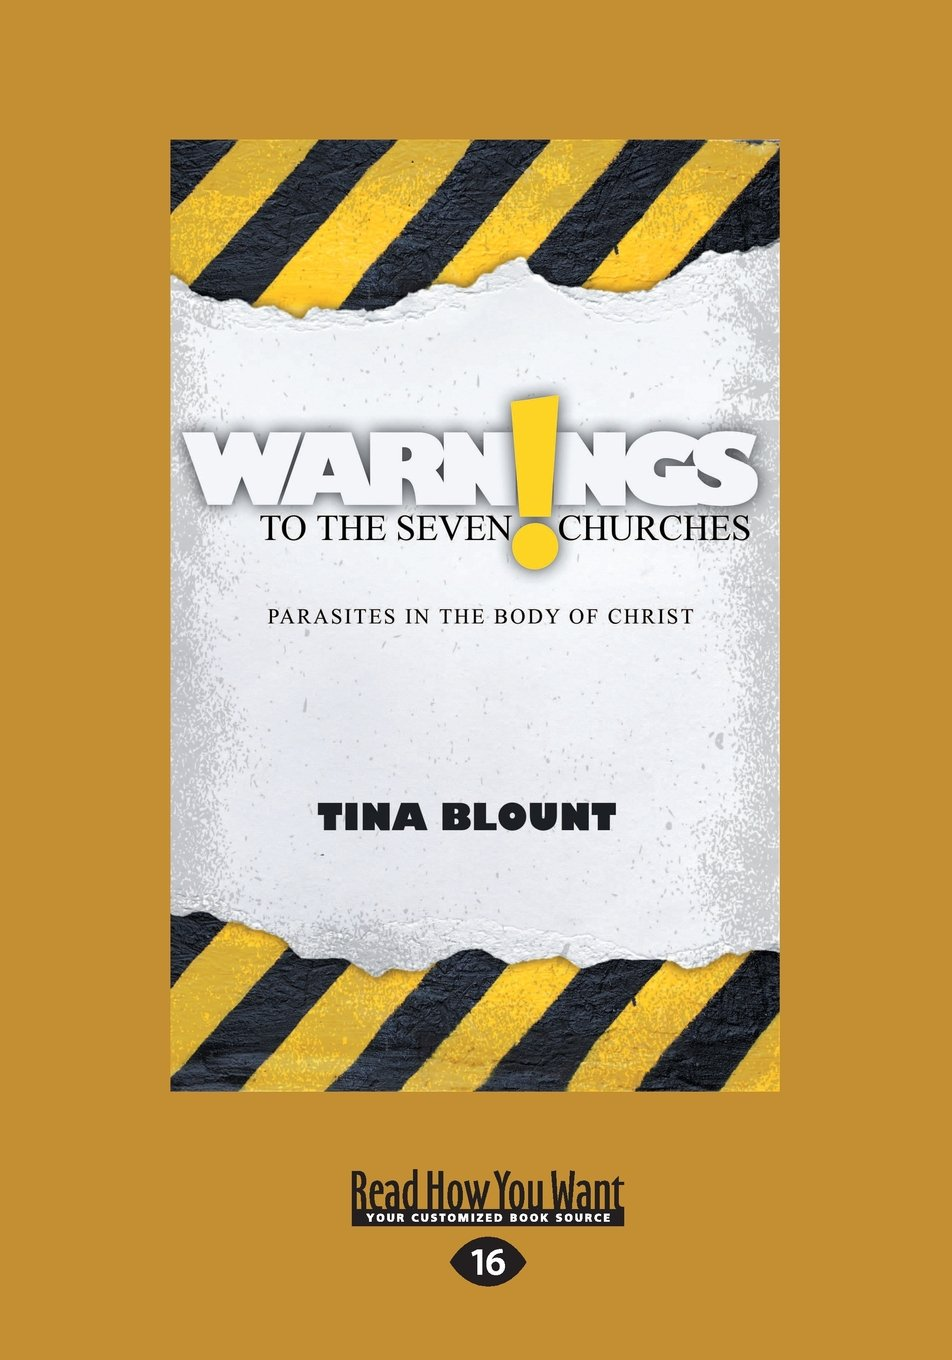 Download Warnings to the Seven Churches: Parasites in the Body of Christ pdf